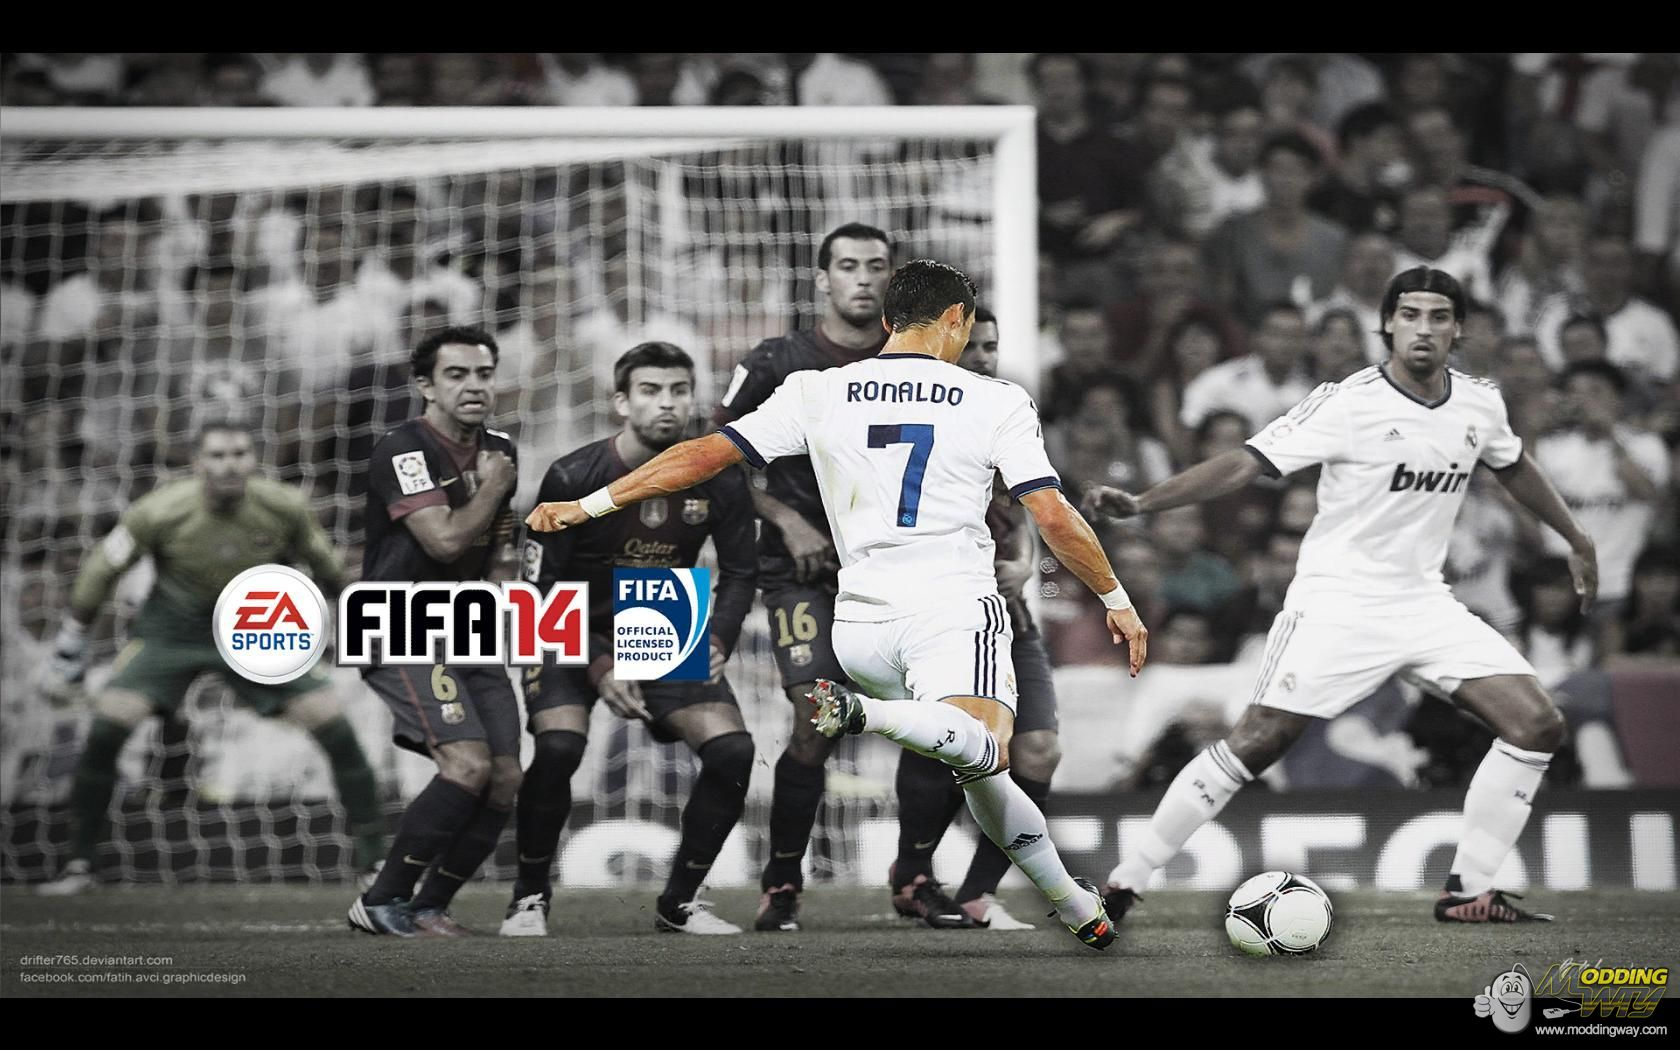 Real Madrid Fifa 14 Wallpaper Download it